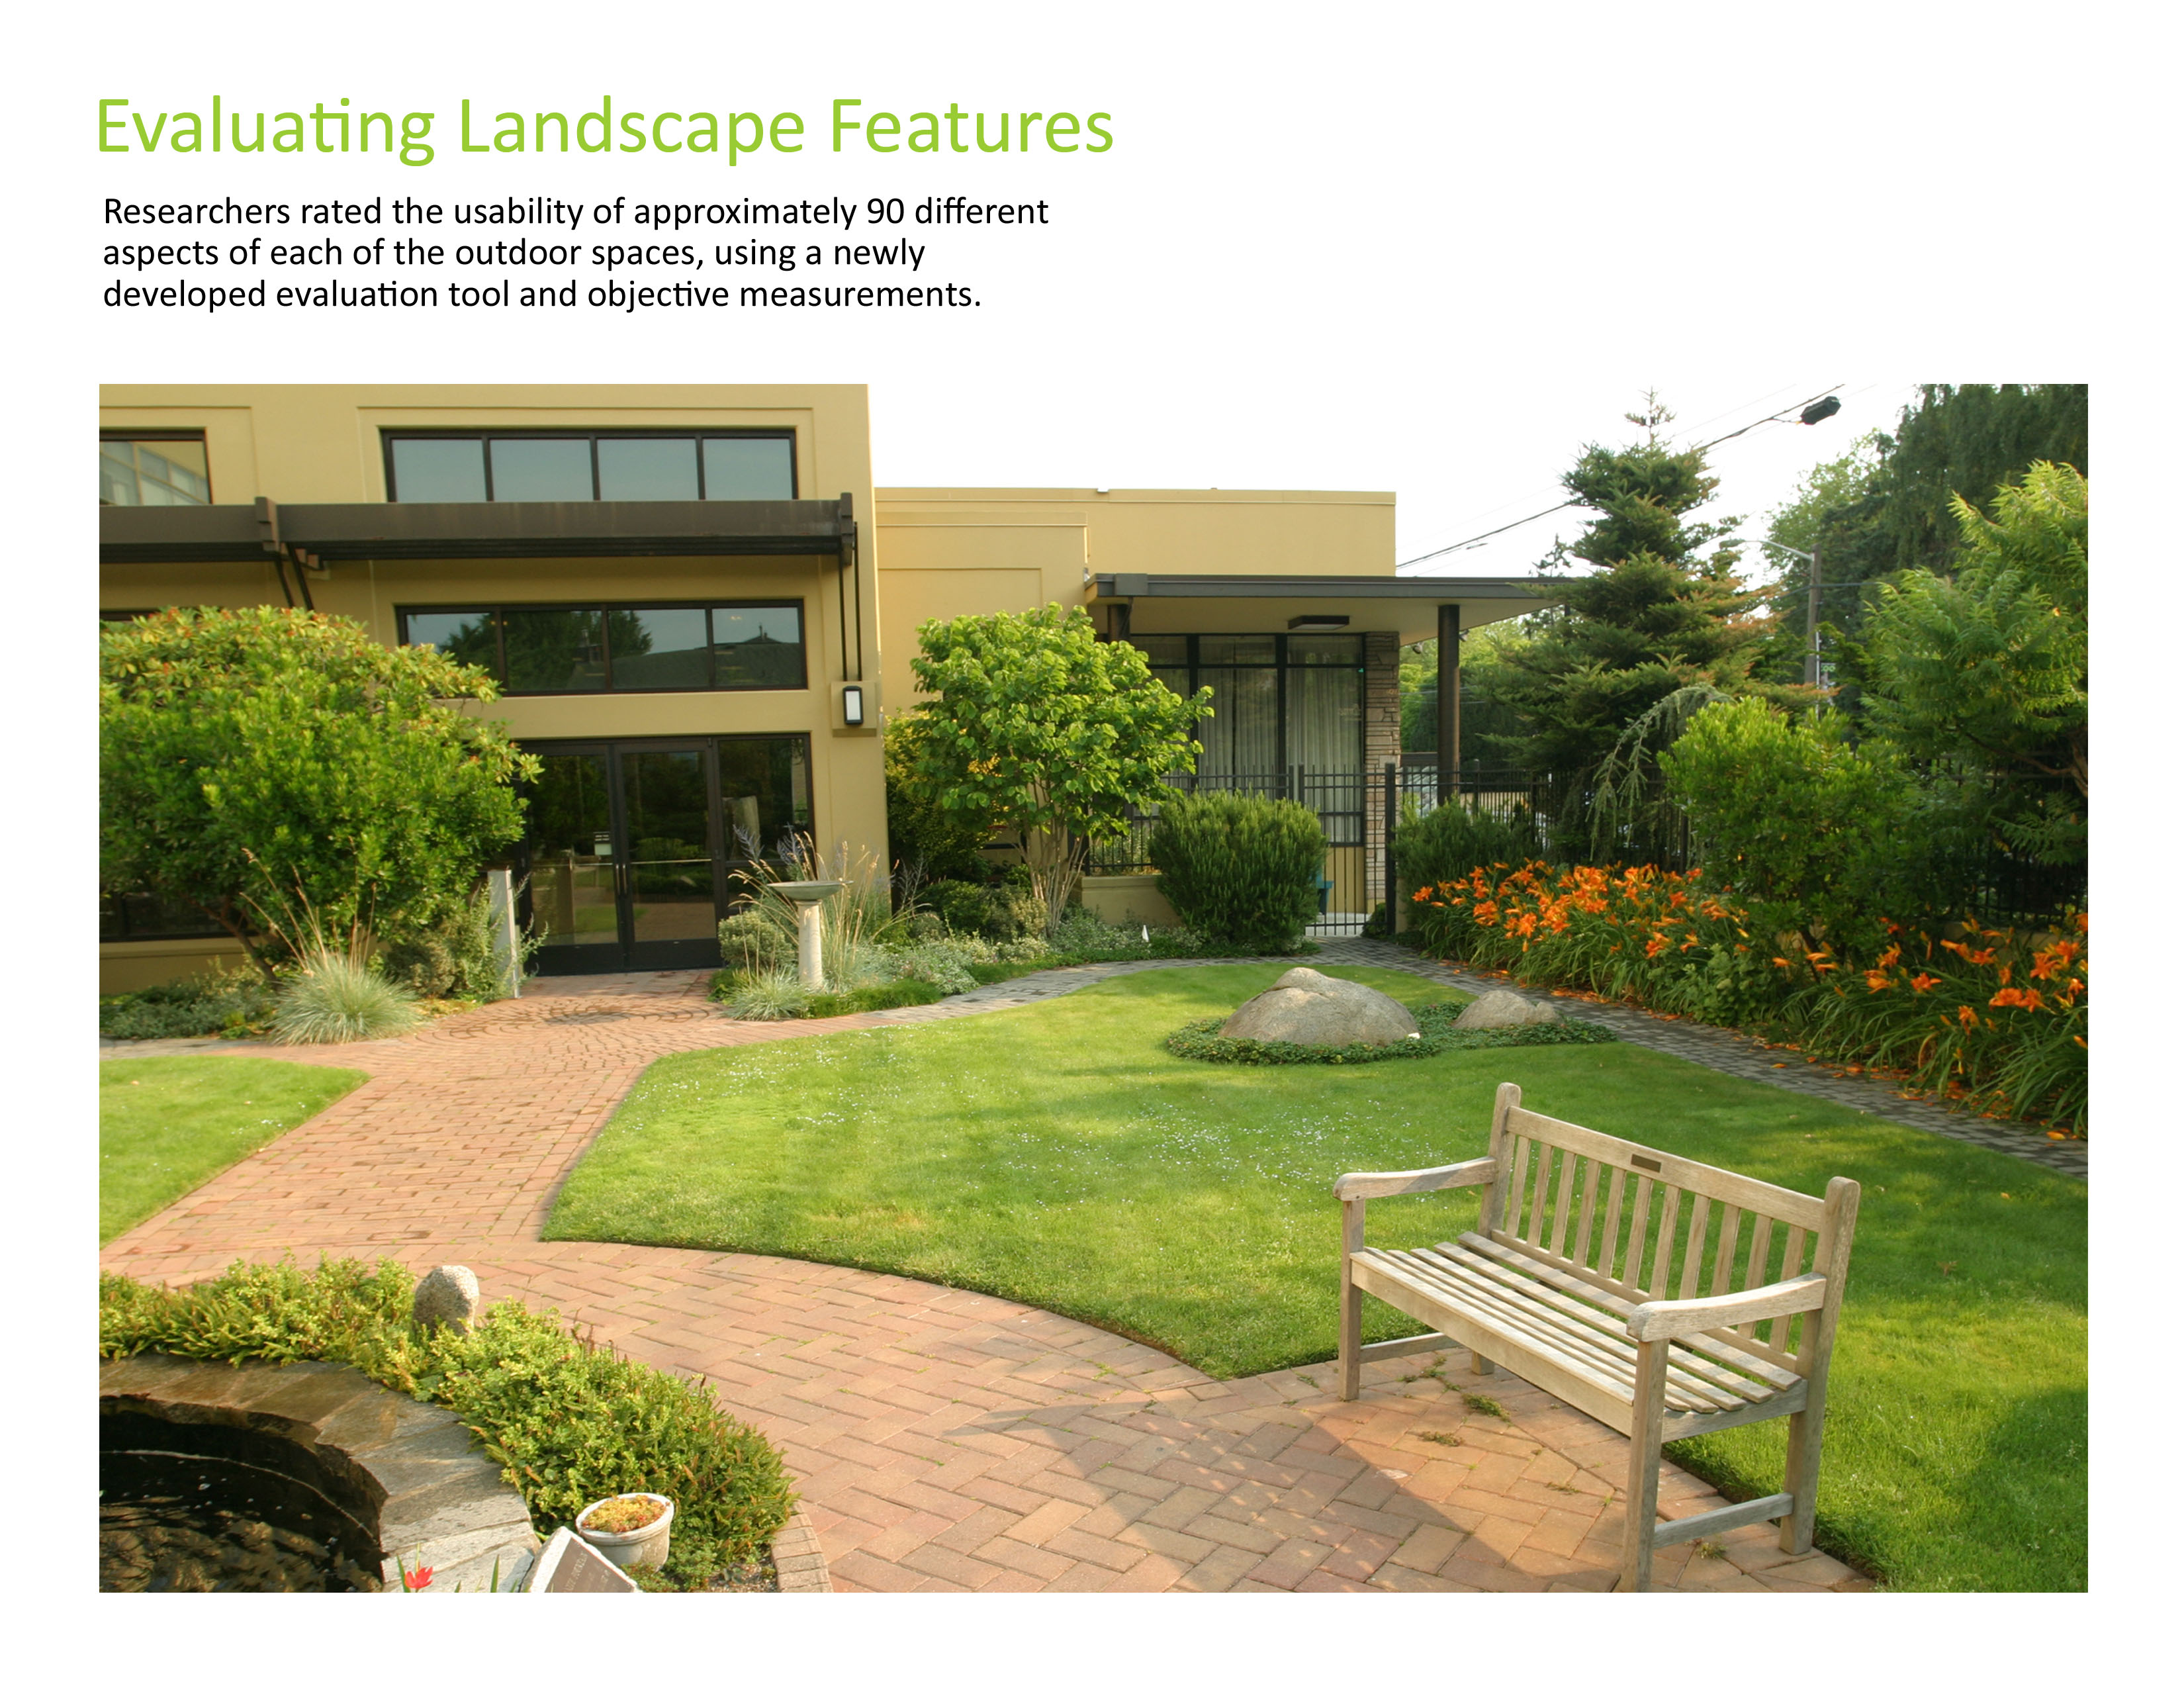 Asla 2010 professional awards access to nature for older for House outside garden design